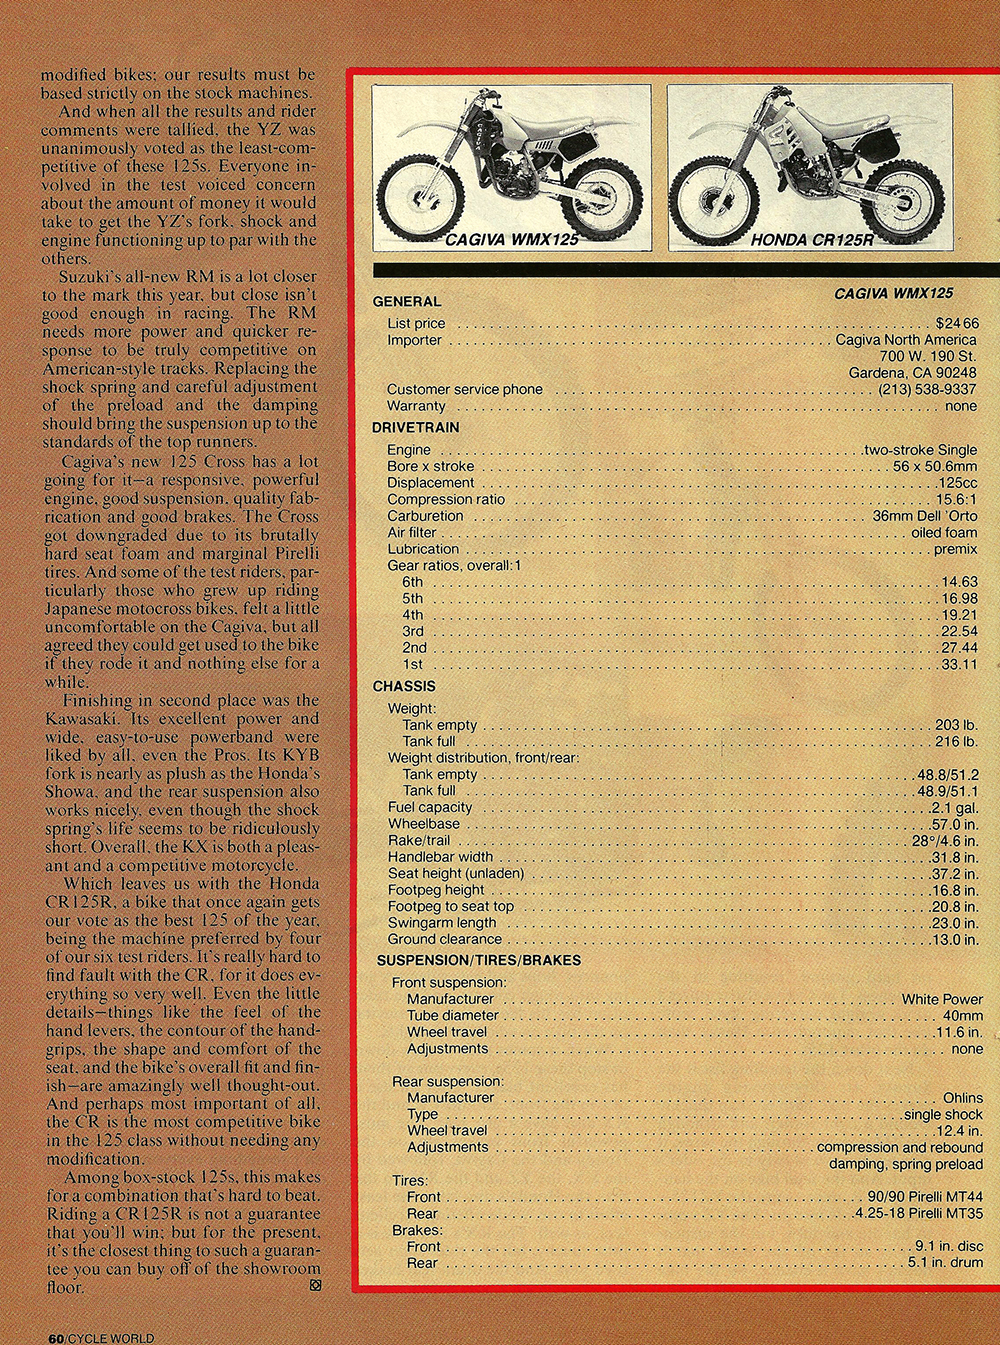 1987 Comparison KX125 vs RM125 vs Cagiva 125MX vs YZ125 vs CR125 road test 06.jpg